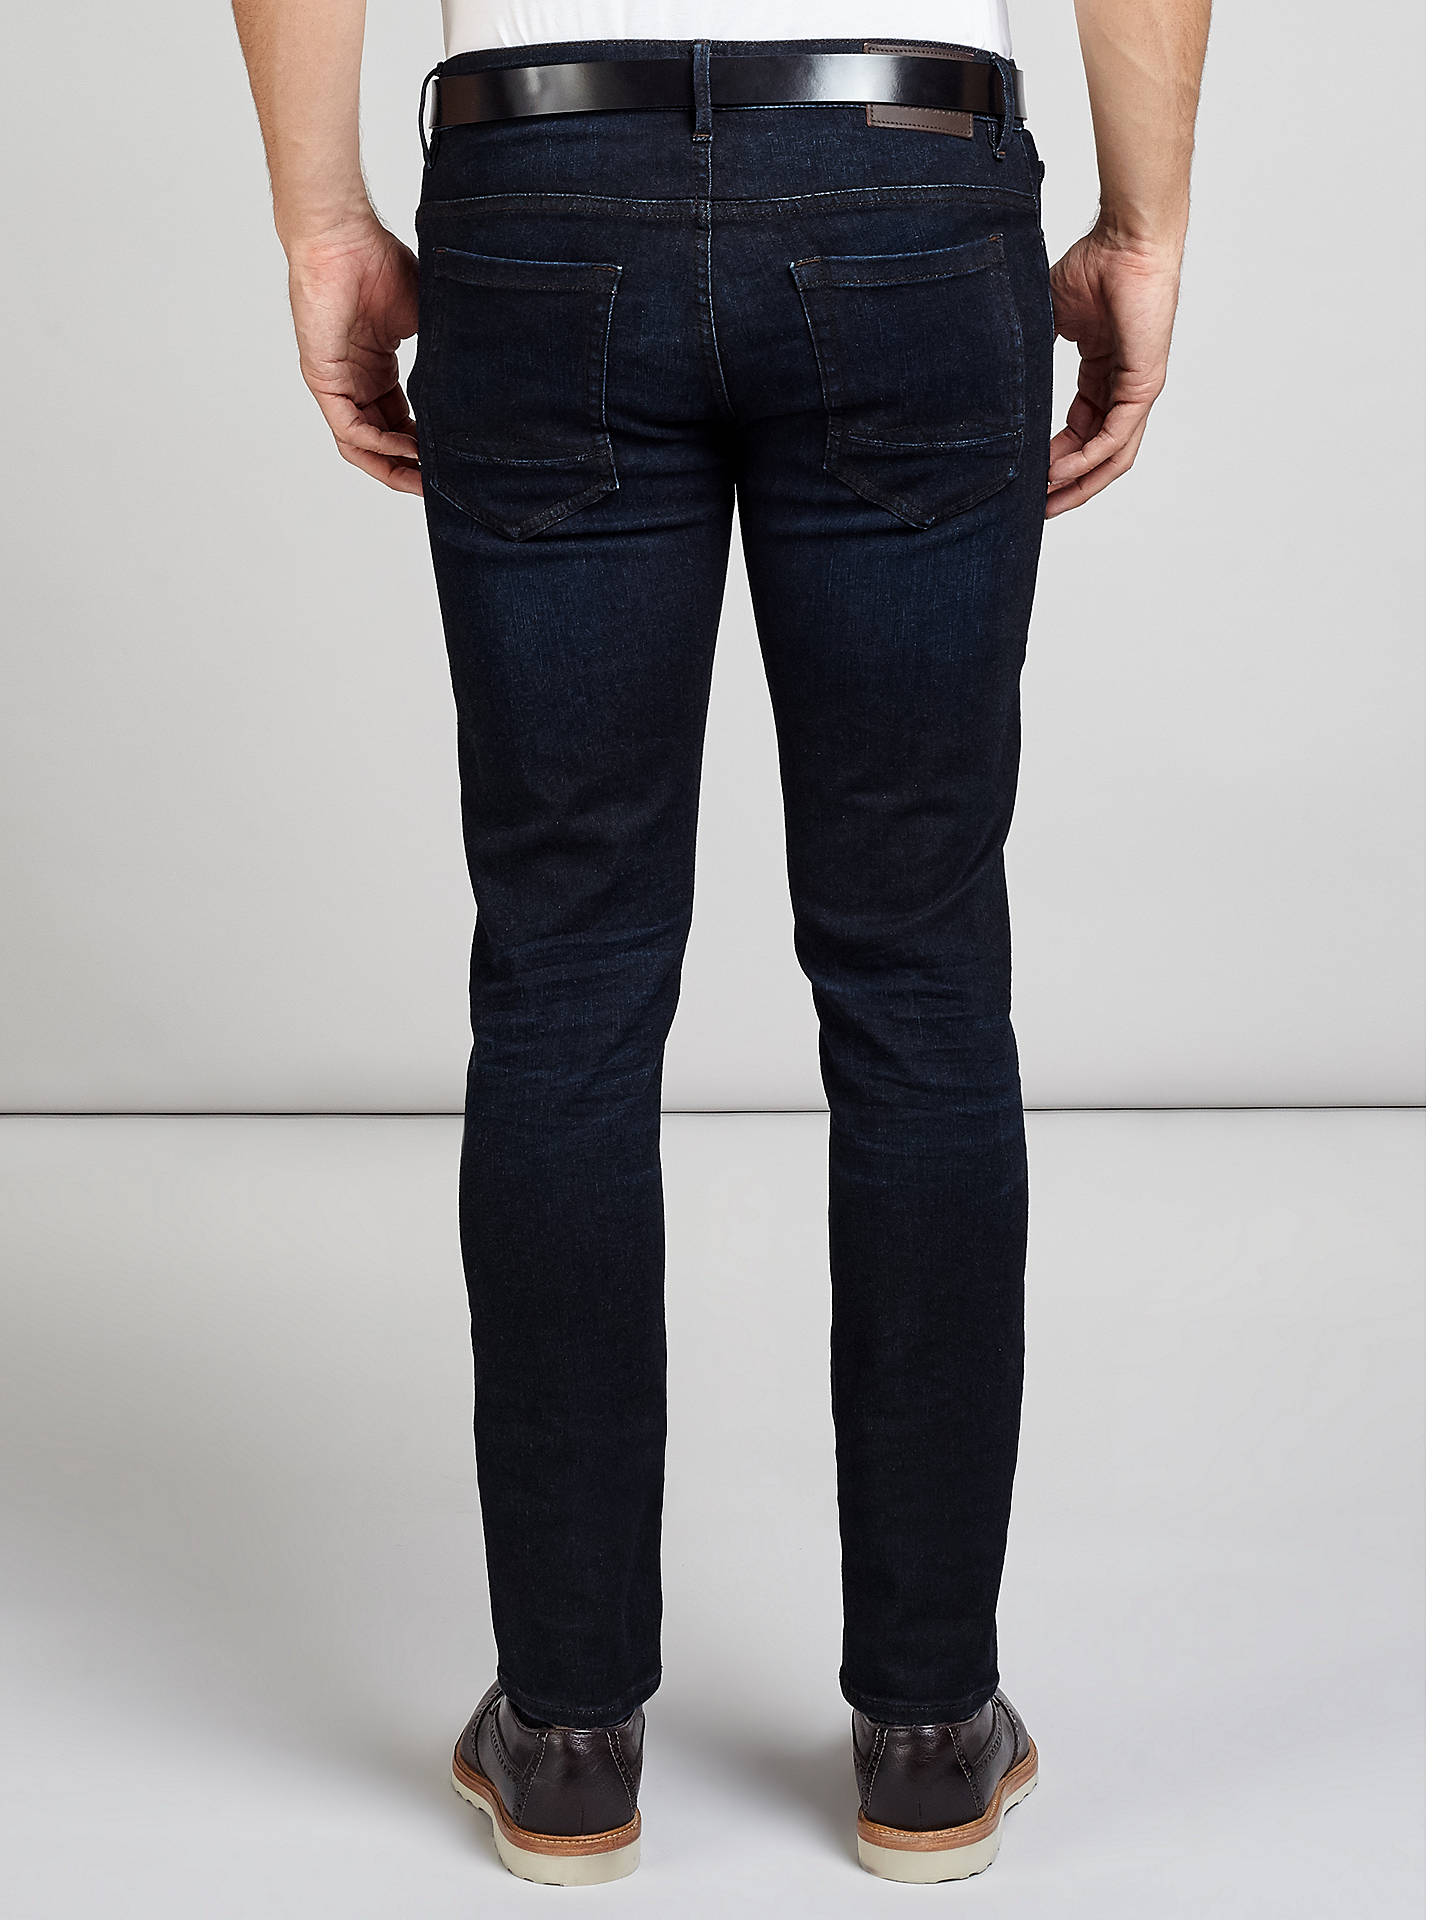 BuyBOSS Orange Orange72 Skinny Jeans, Navy, 32S Online at johnlewis.com